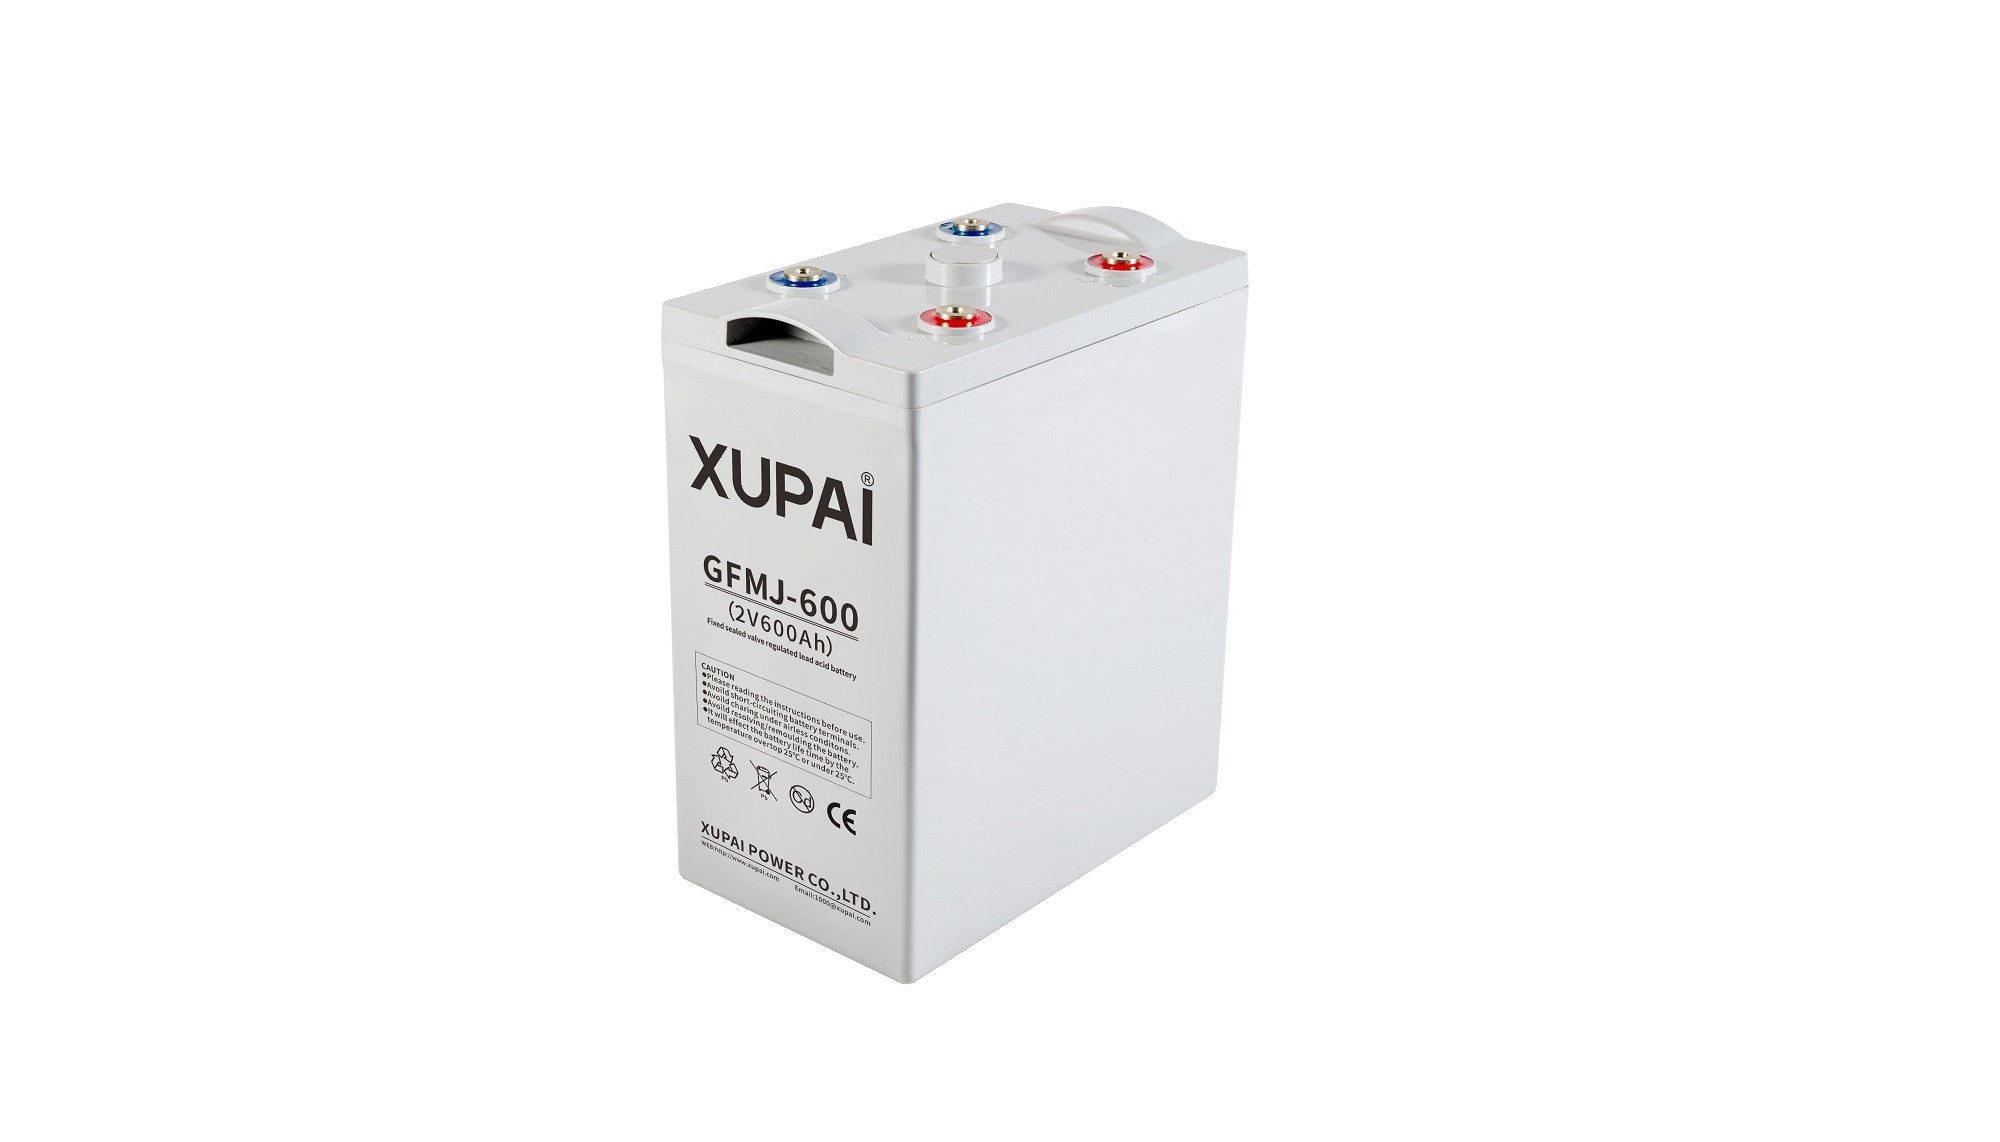 XUPAI GFMJ-600 long life backup  base station GEL battery